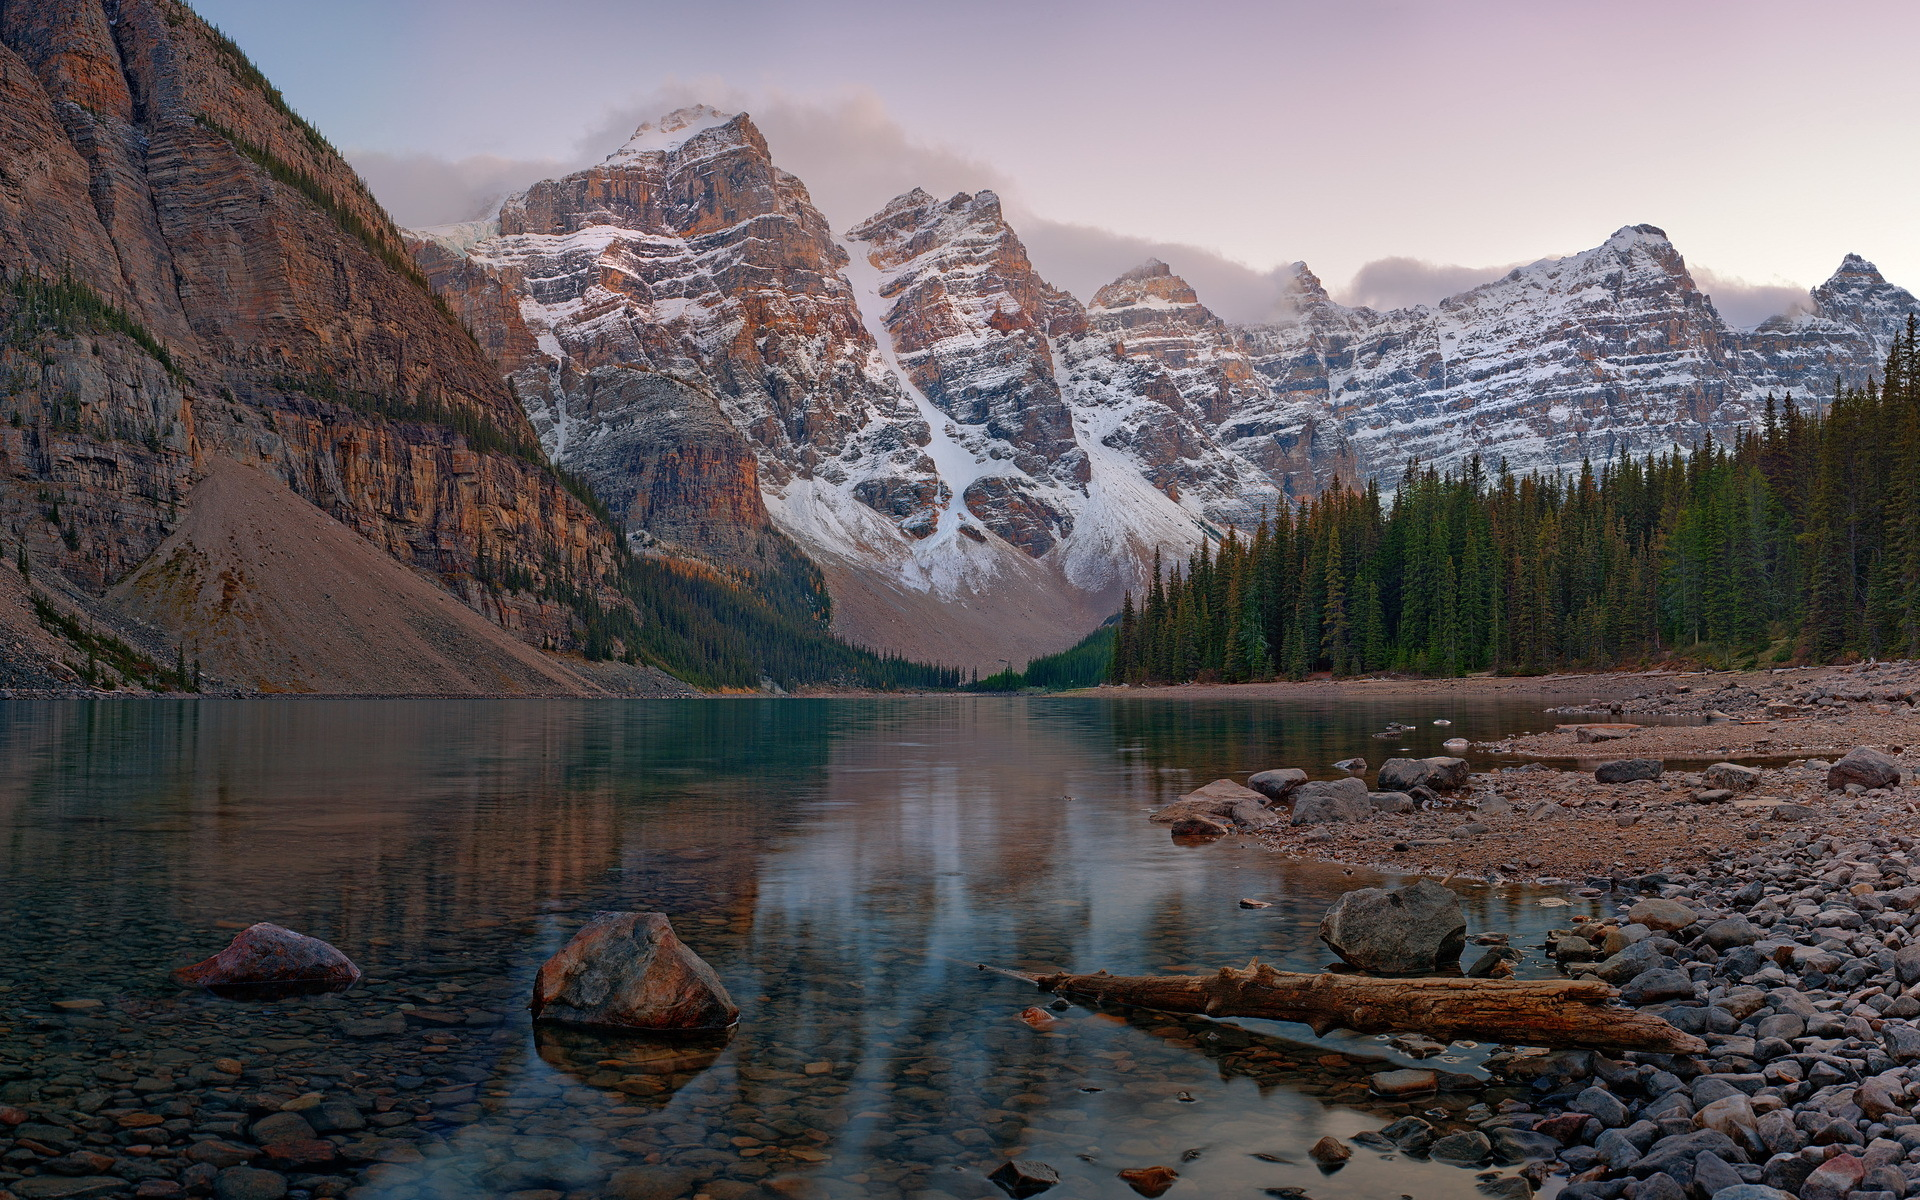 High resolution image of Banff National Park picture of Moraine Lake 1920x1200